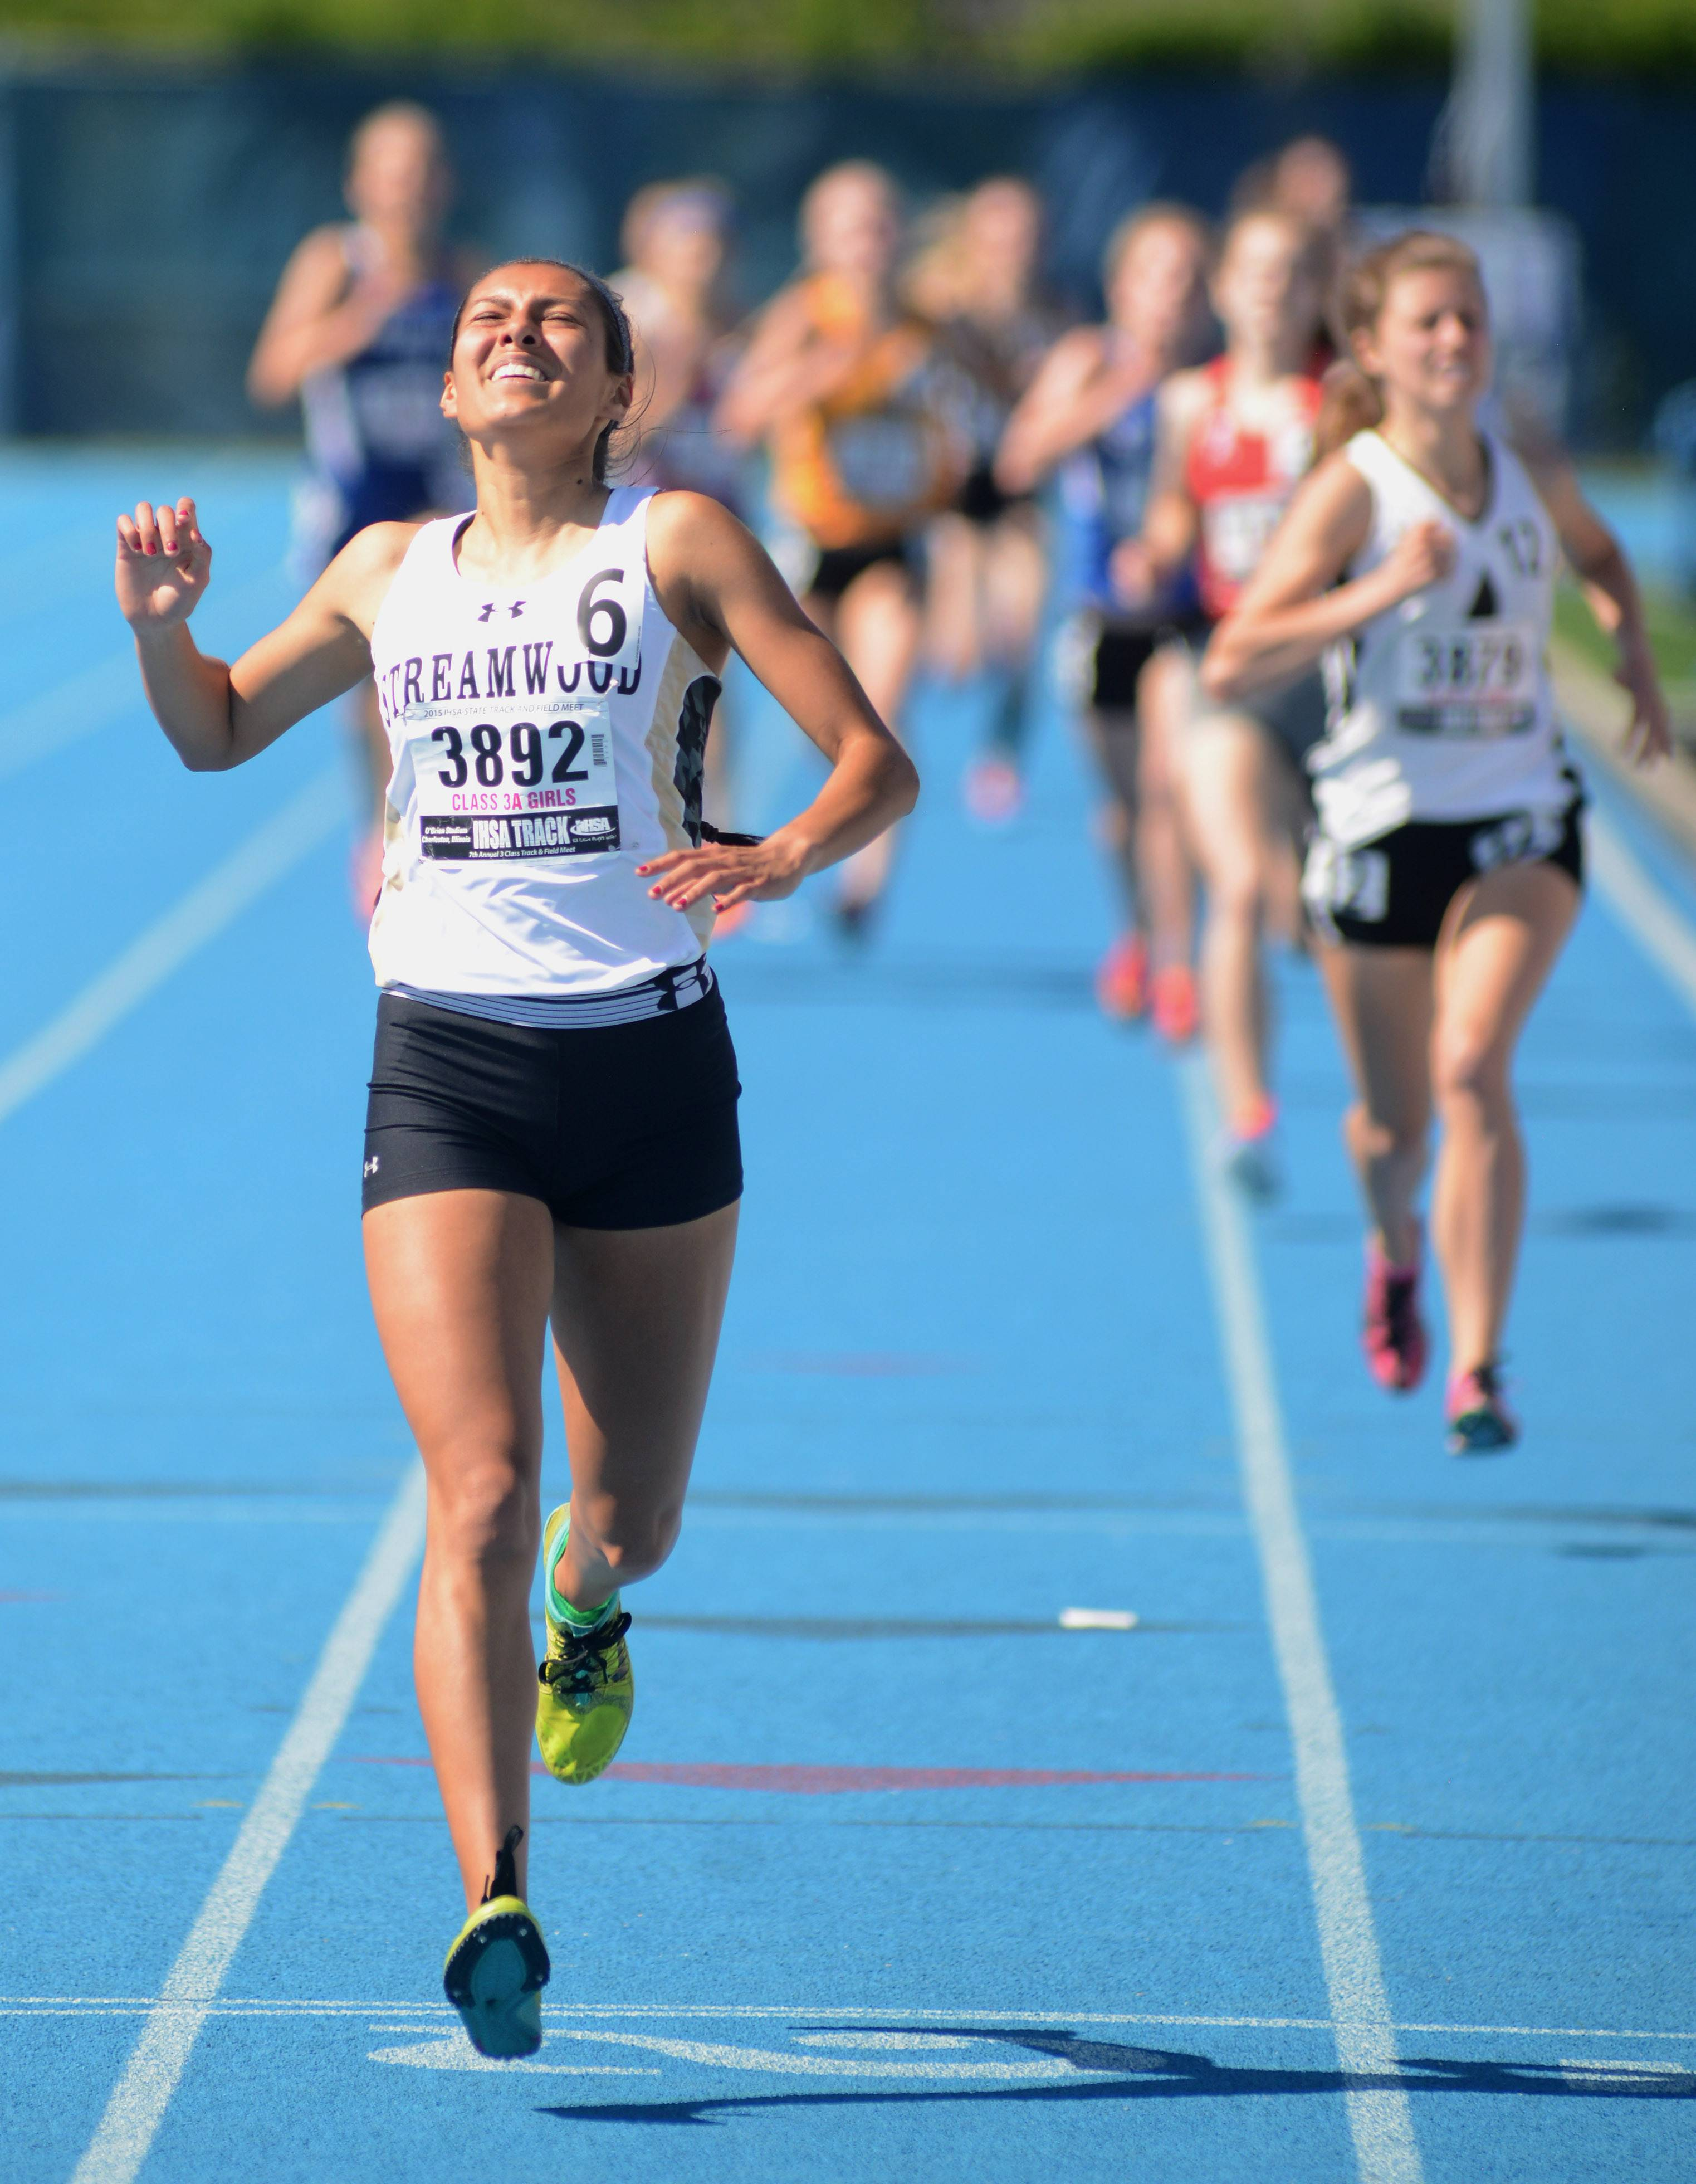 Streamwood's Gabby Juarez wins the 1,600-meter run in the IHSA Class 3A state finals at O'Brien Stadium in Charleston Saturday.